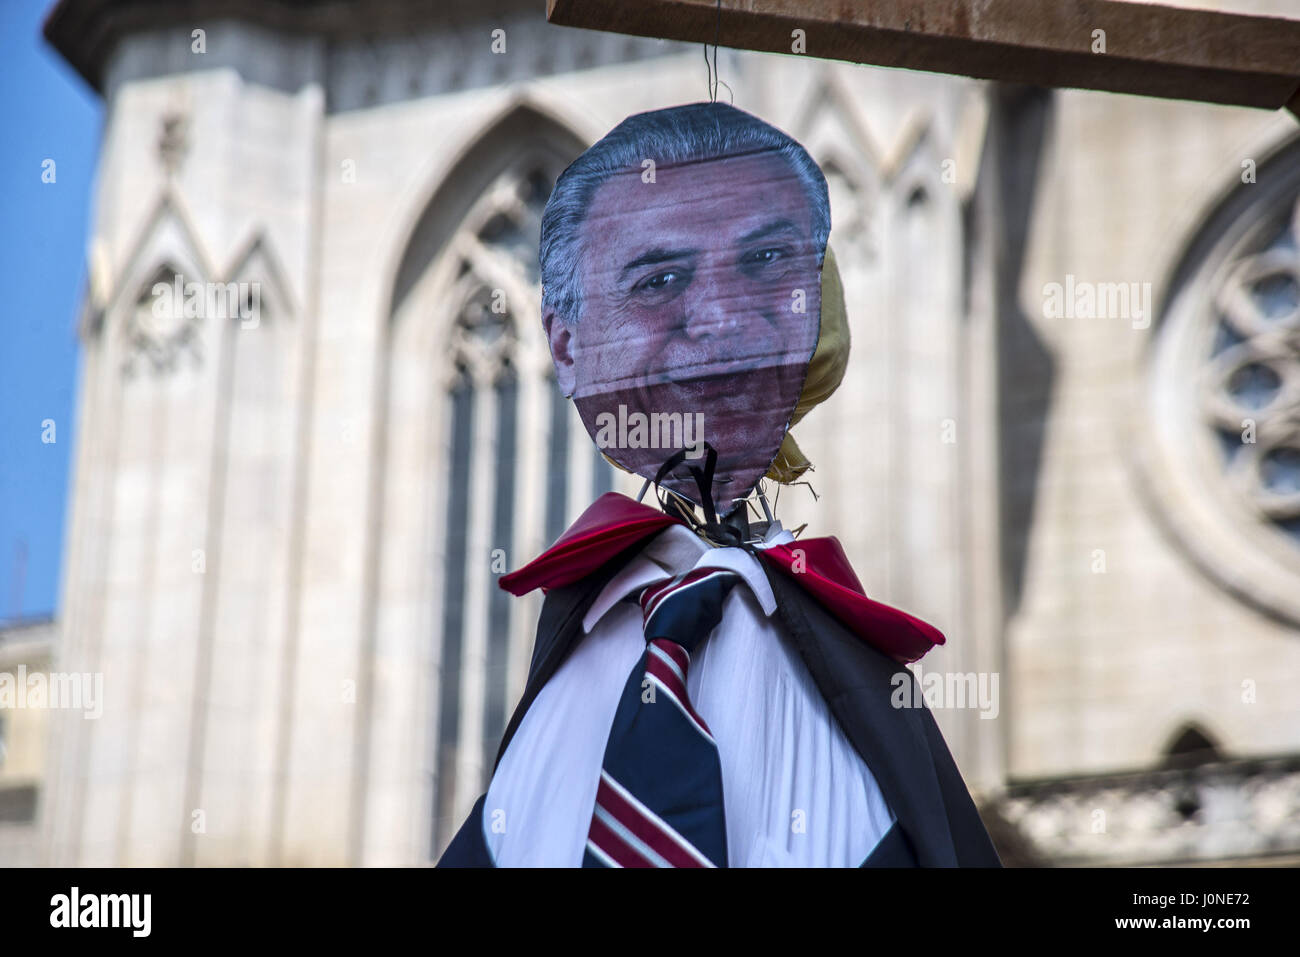 April 15, 2017 - SâO Paulo, São paulo, Brazil - In the city of São Paulo, Judas chosen to be spotted was the Stock Photo